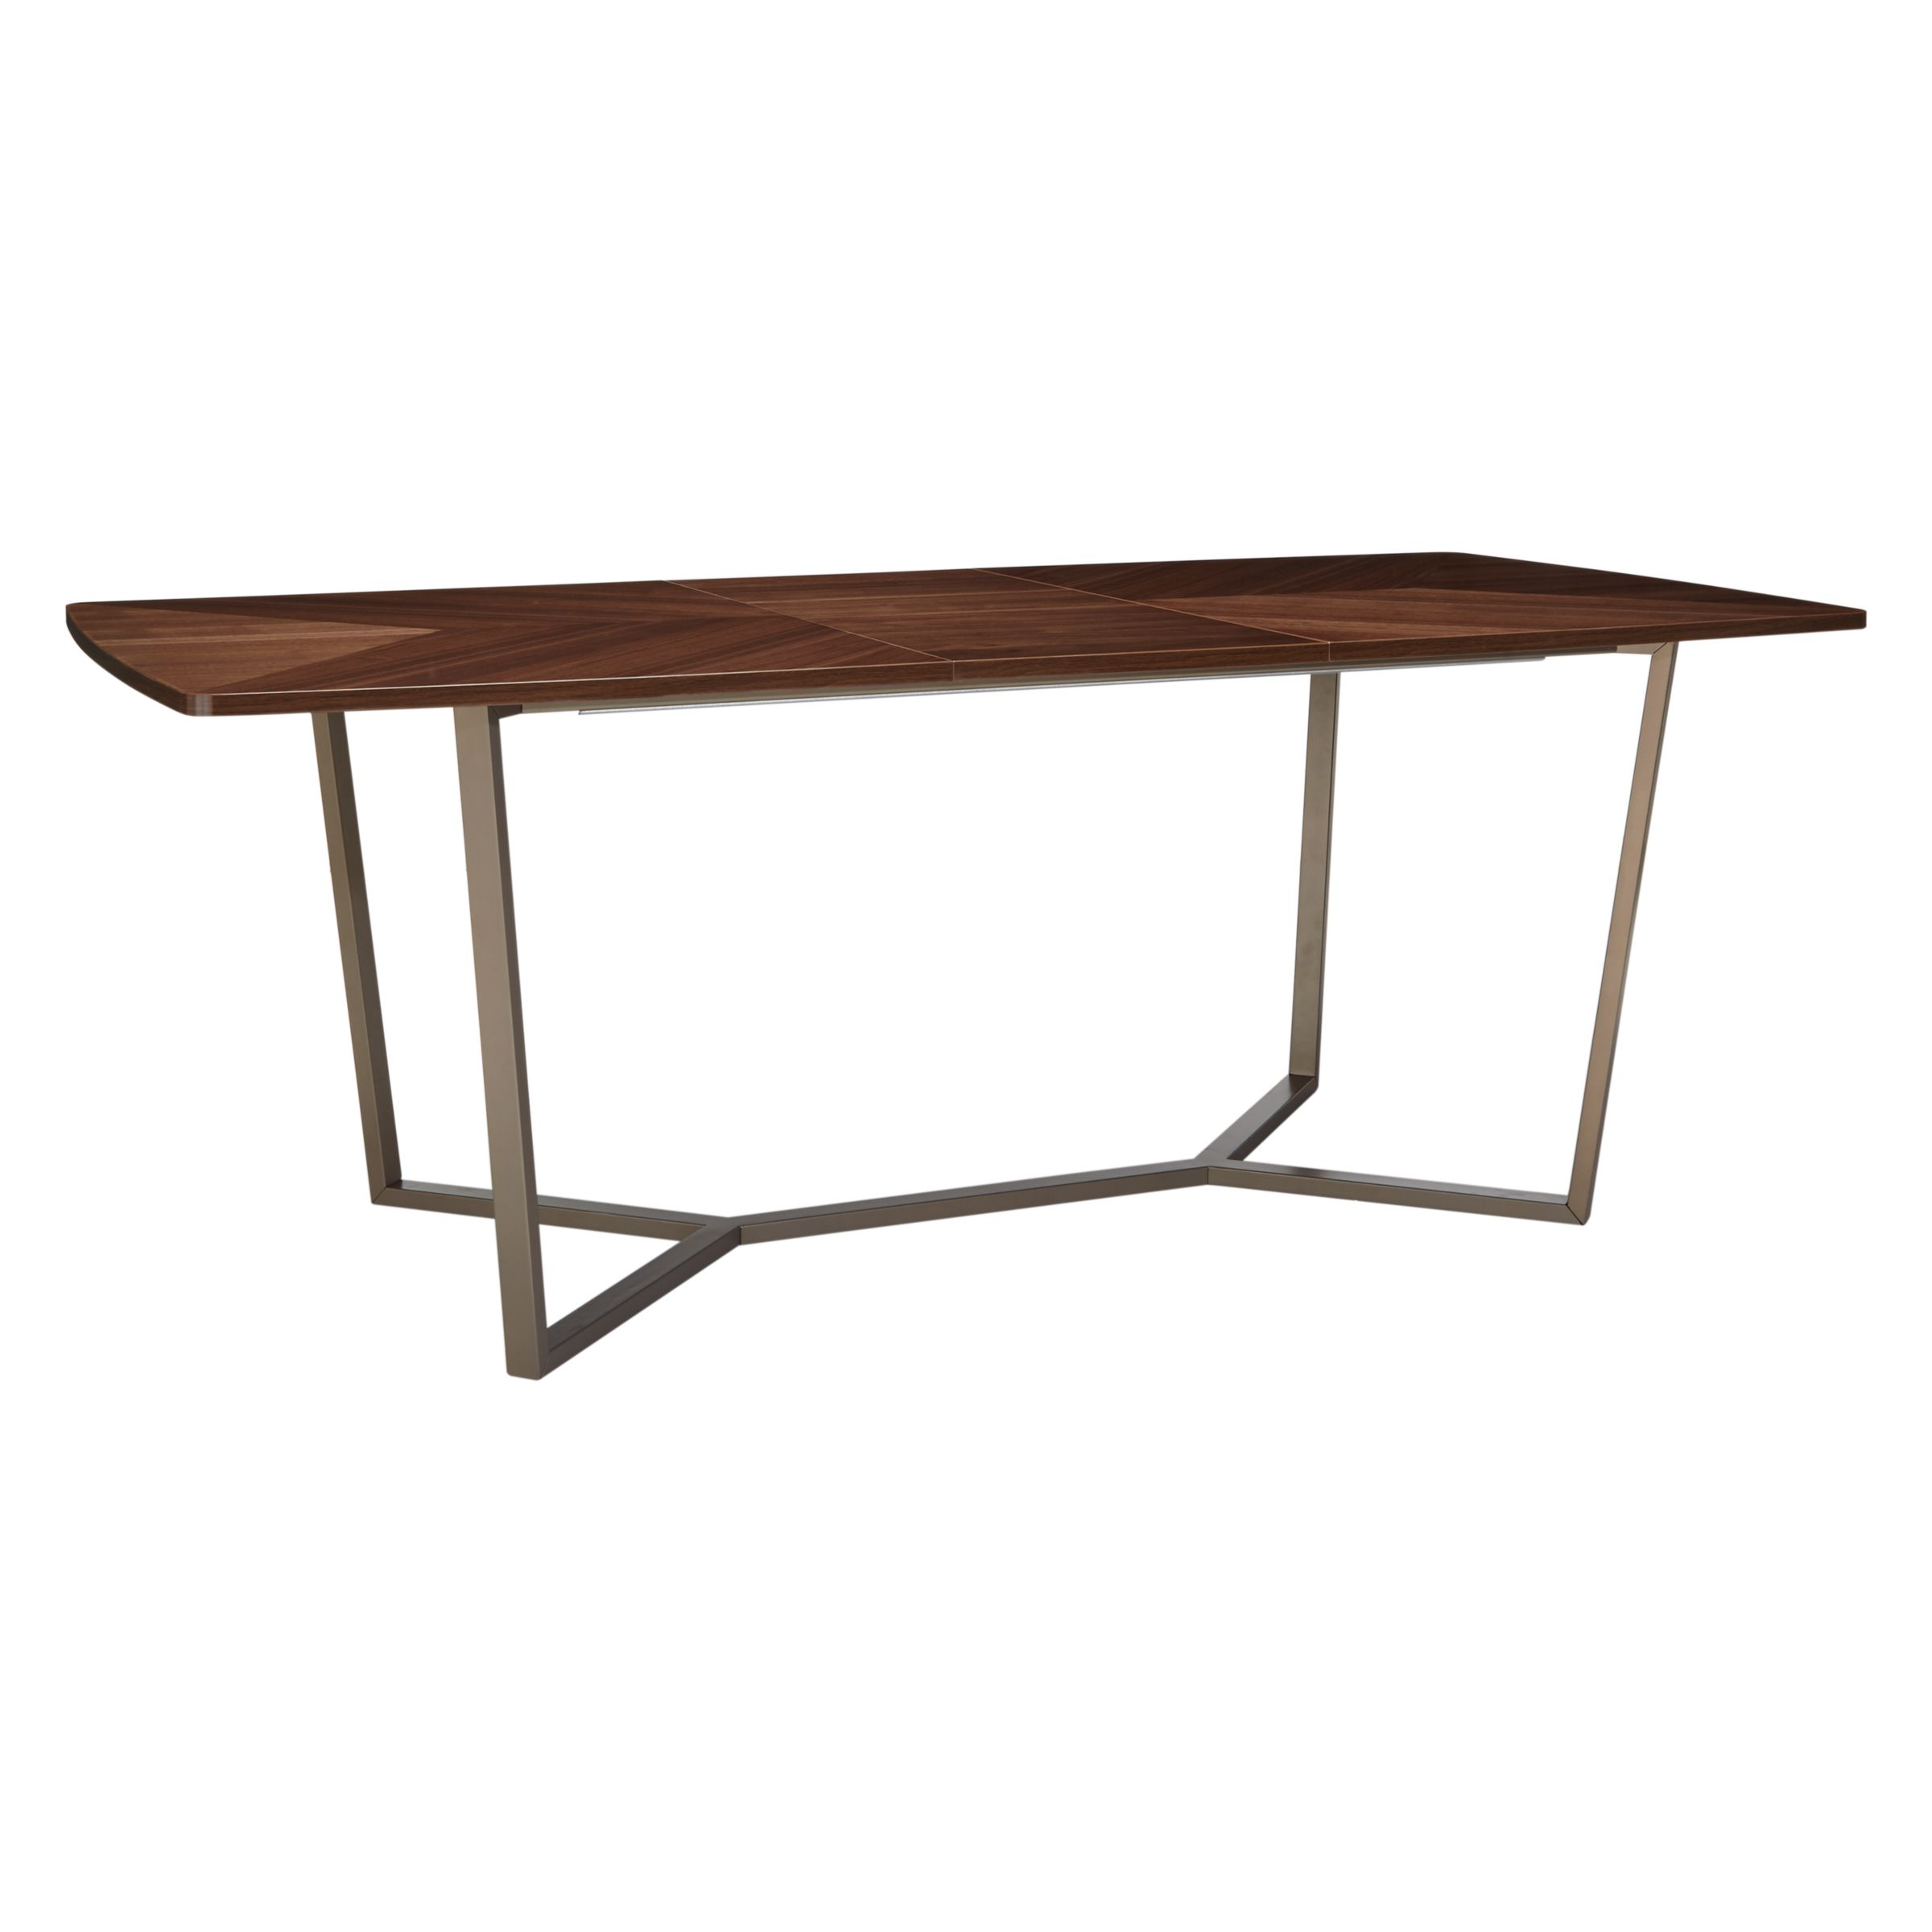 John Lewis Puccini Extending Dining Table 6